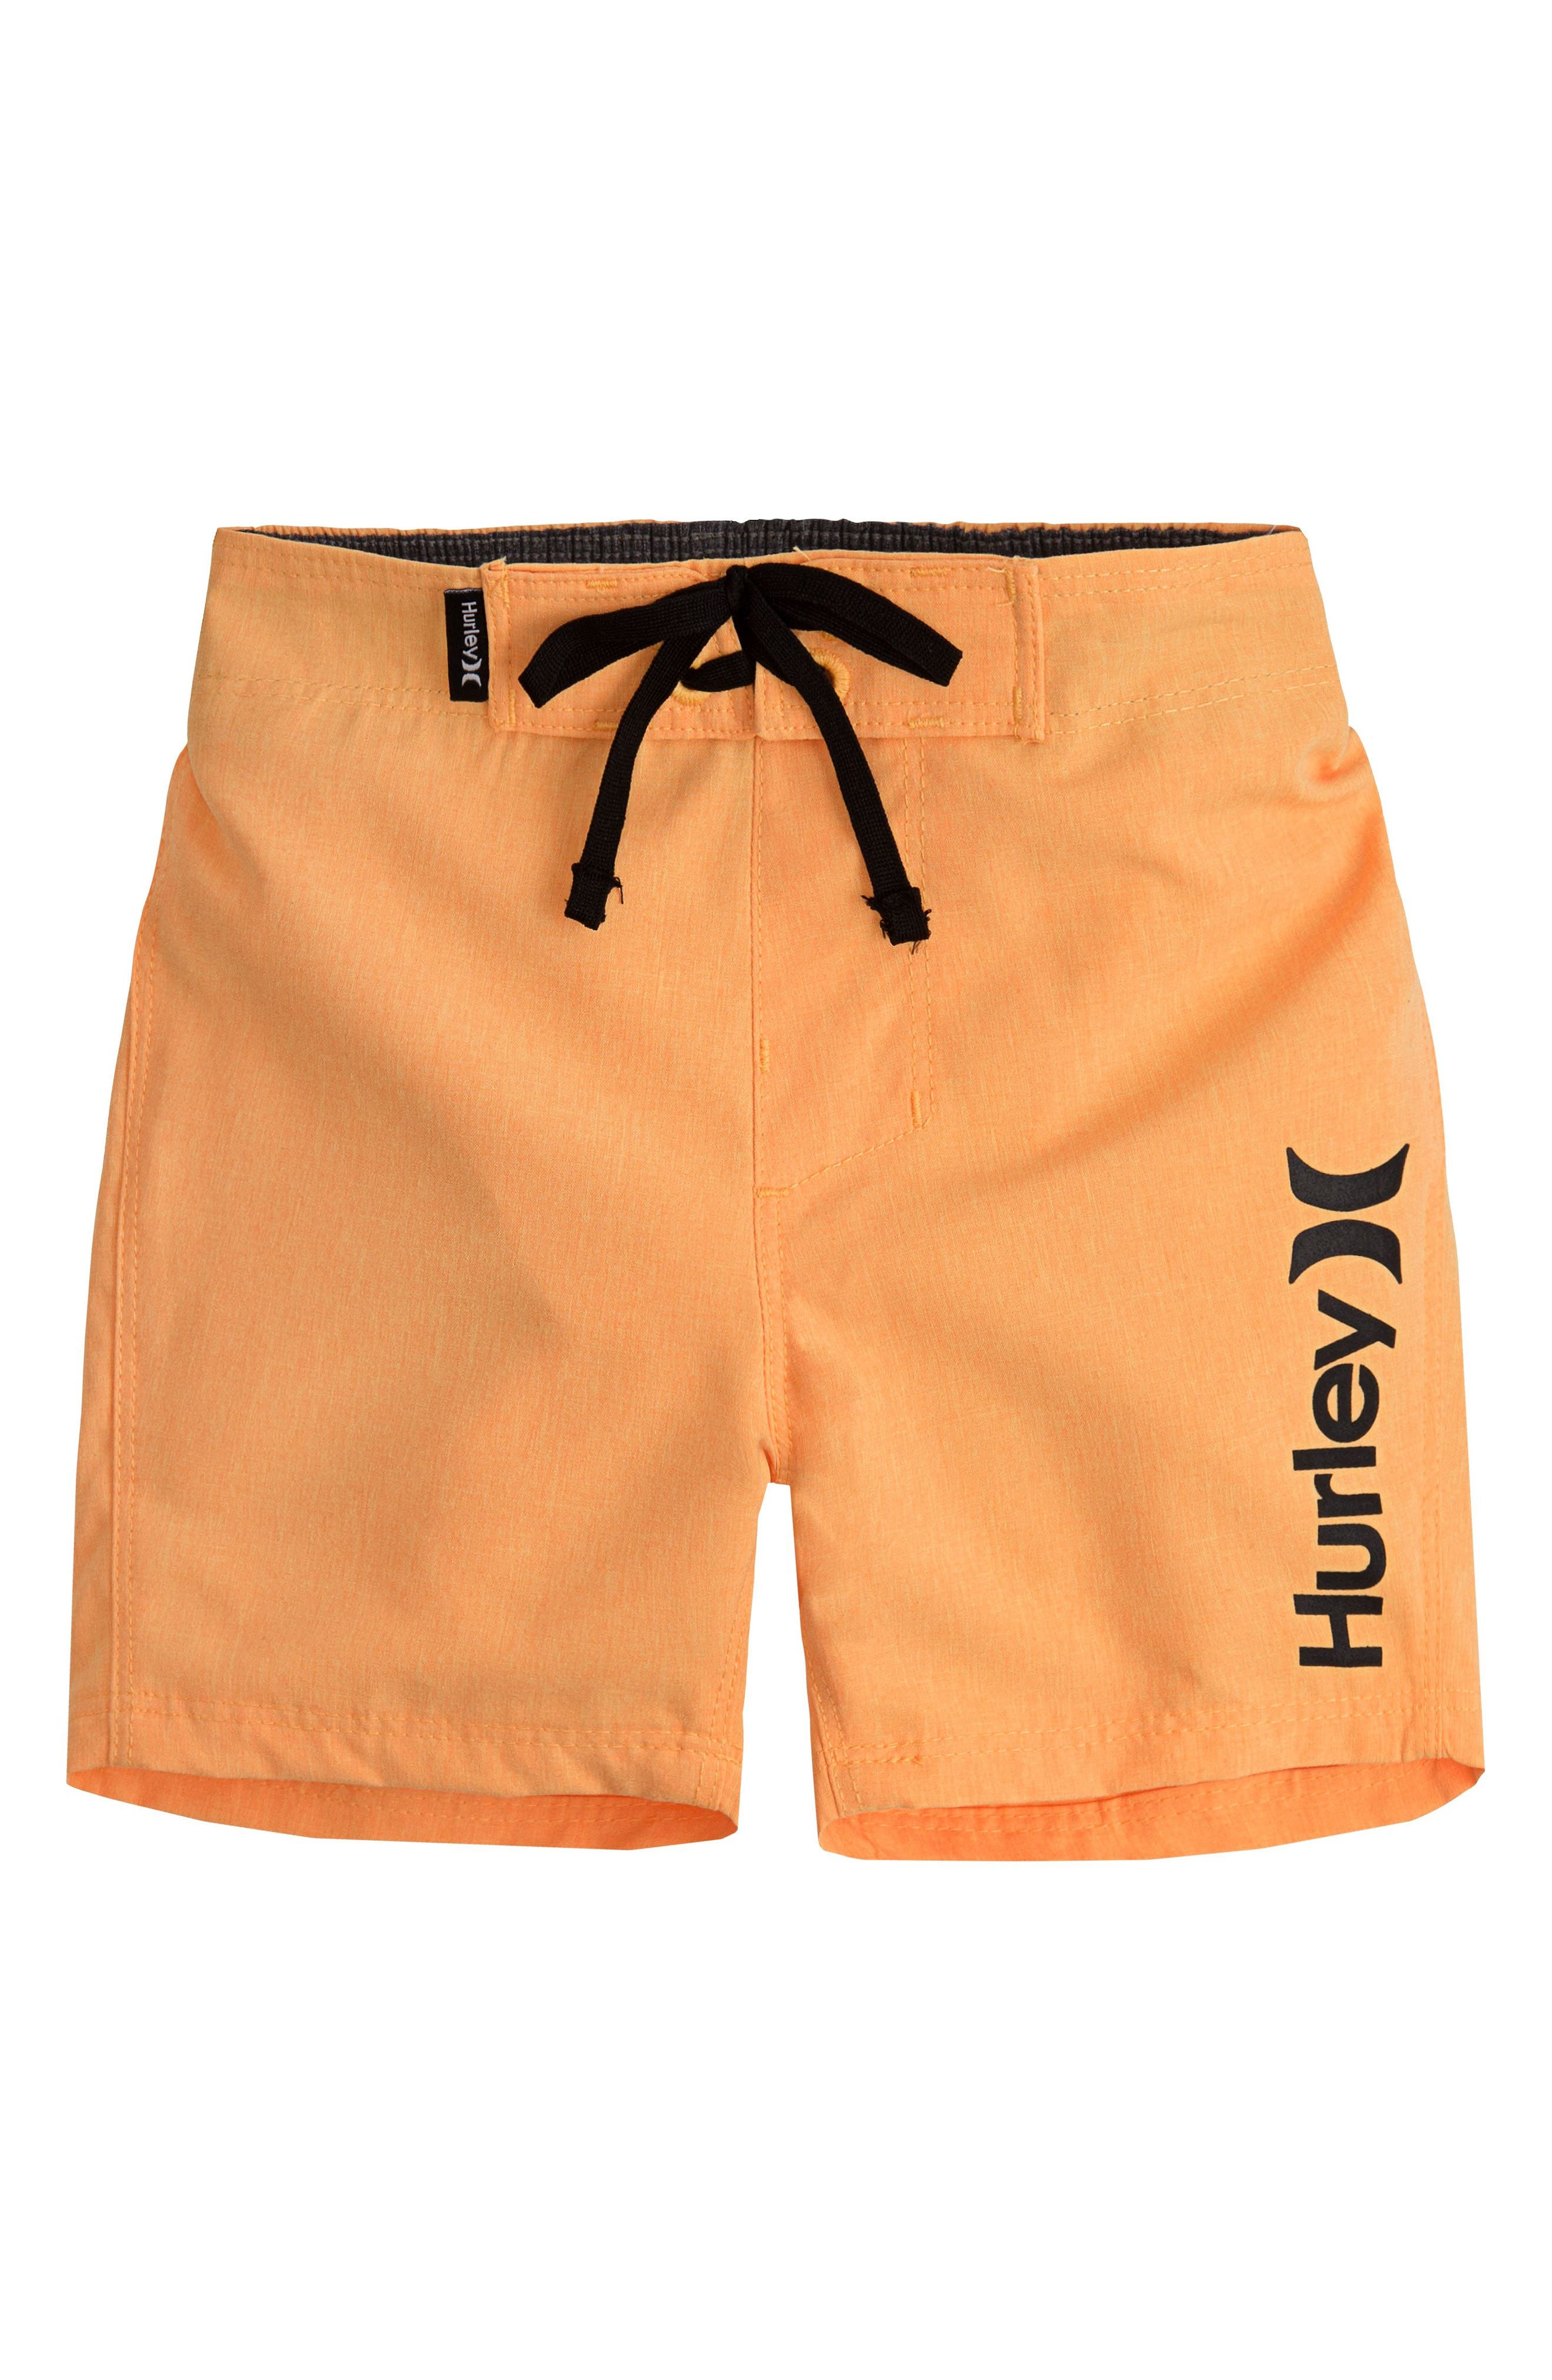 Heathered One & Only Board Shorts,                             Main thumbnail 1, color,                             Laser Orange Heather